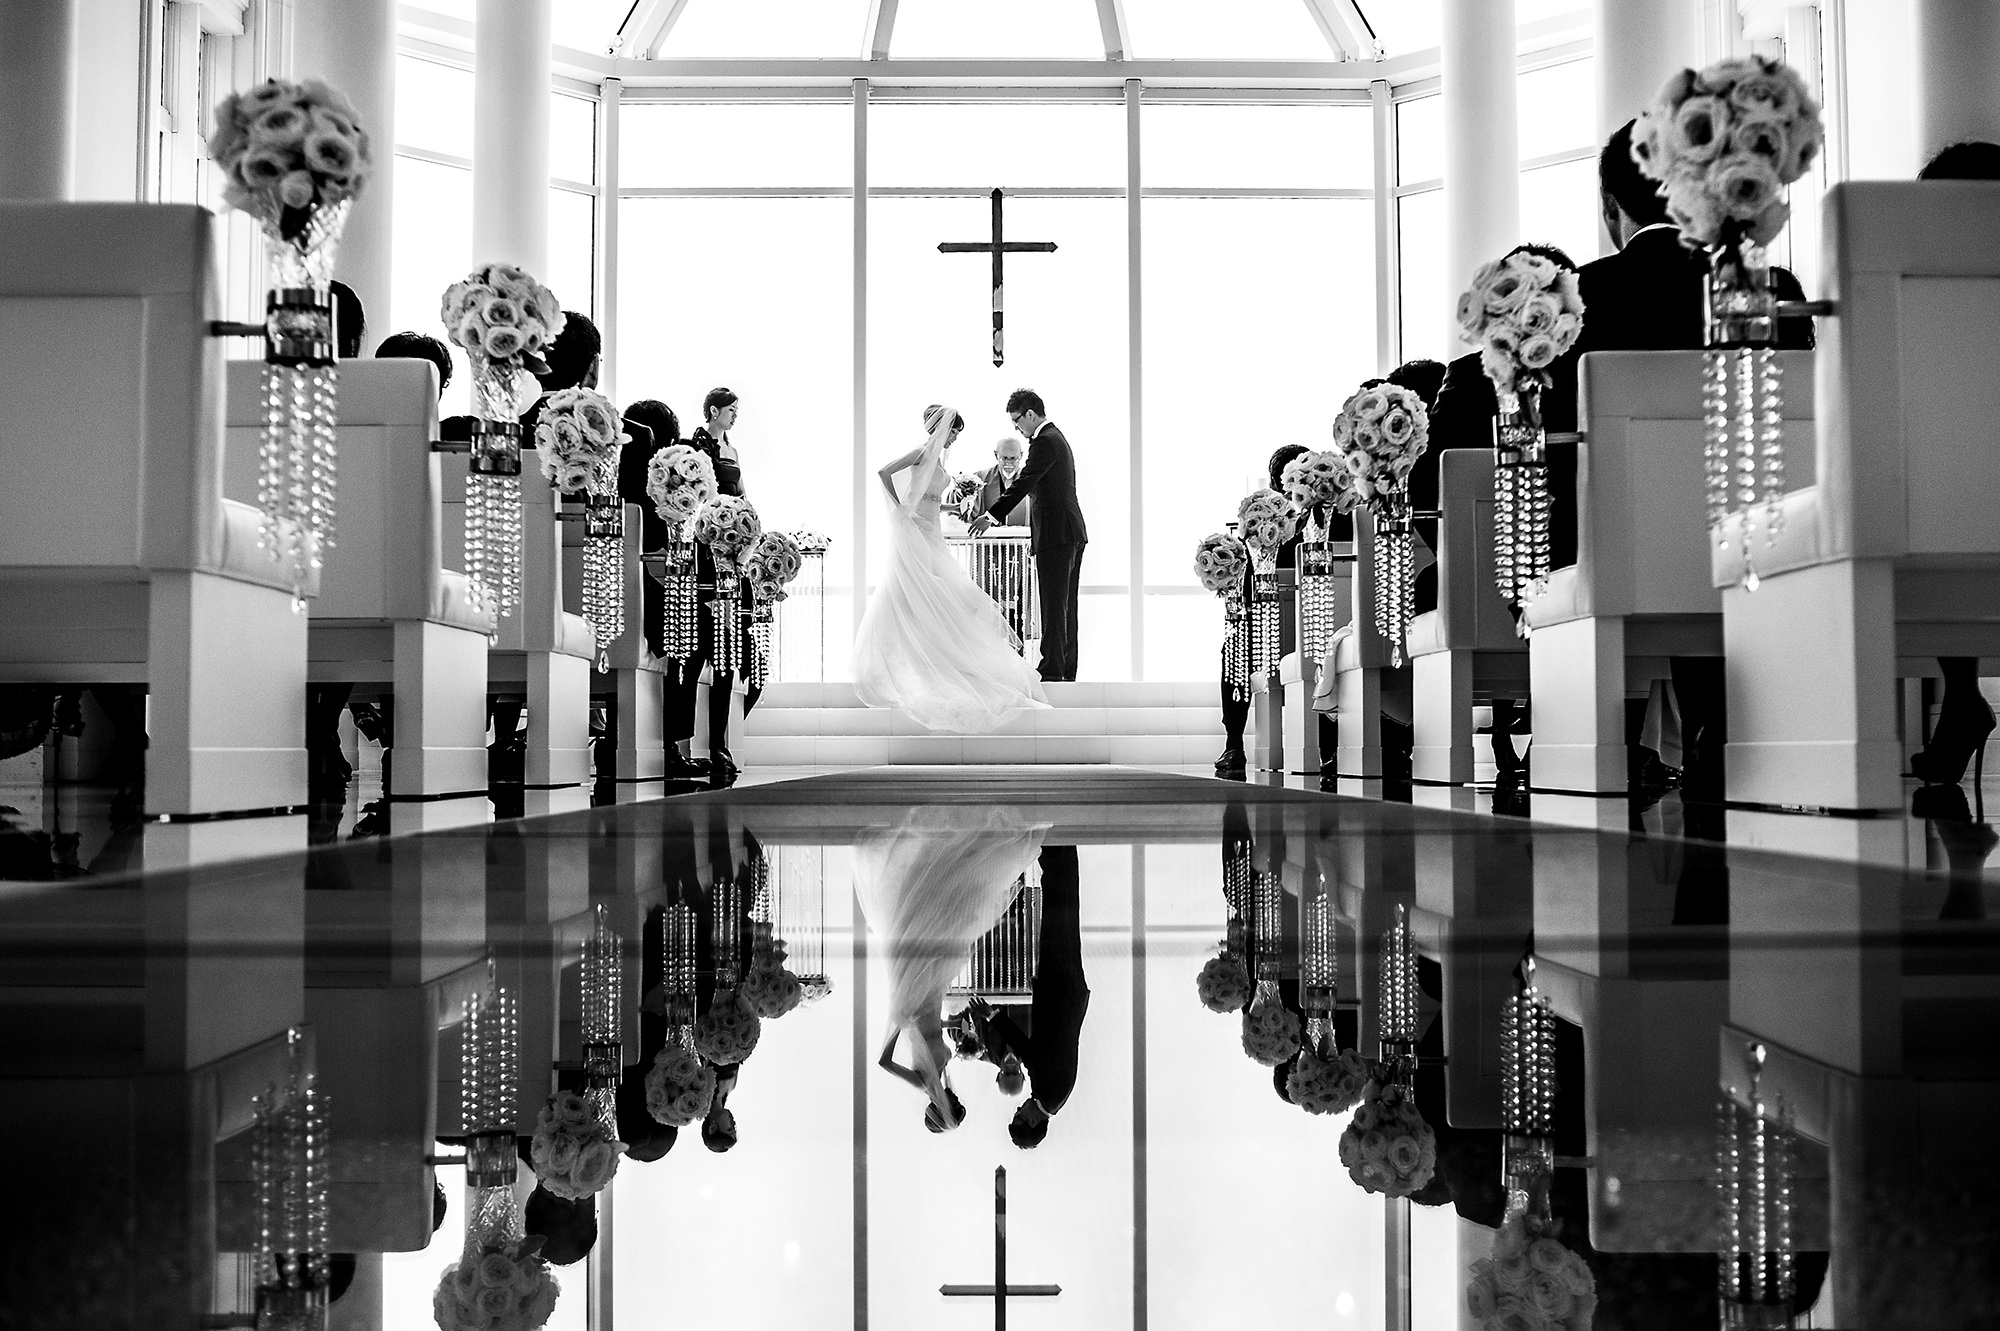 Ceremony with couple and cross reflected in floor - Davina + Daniel